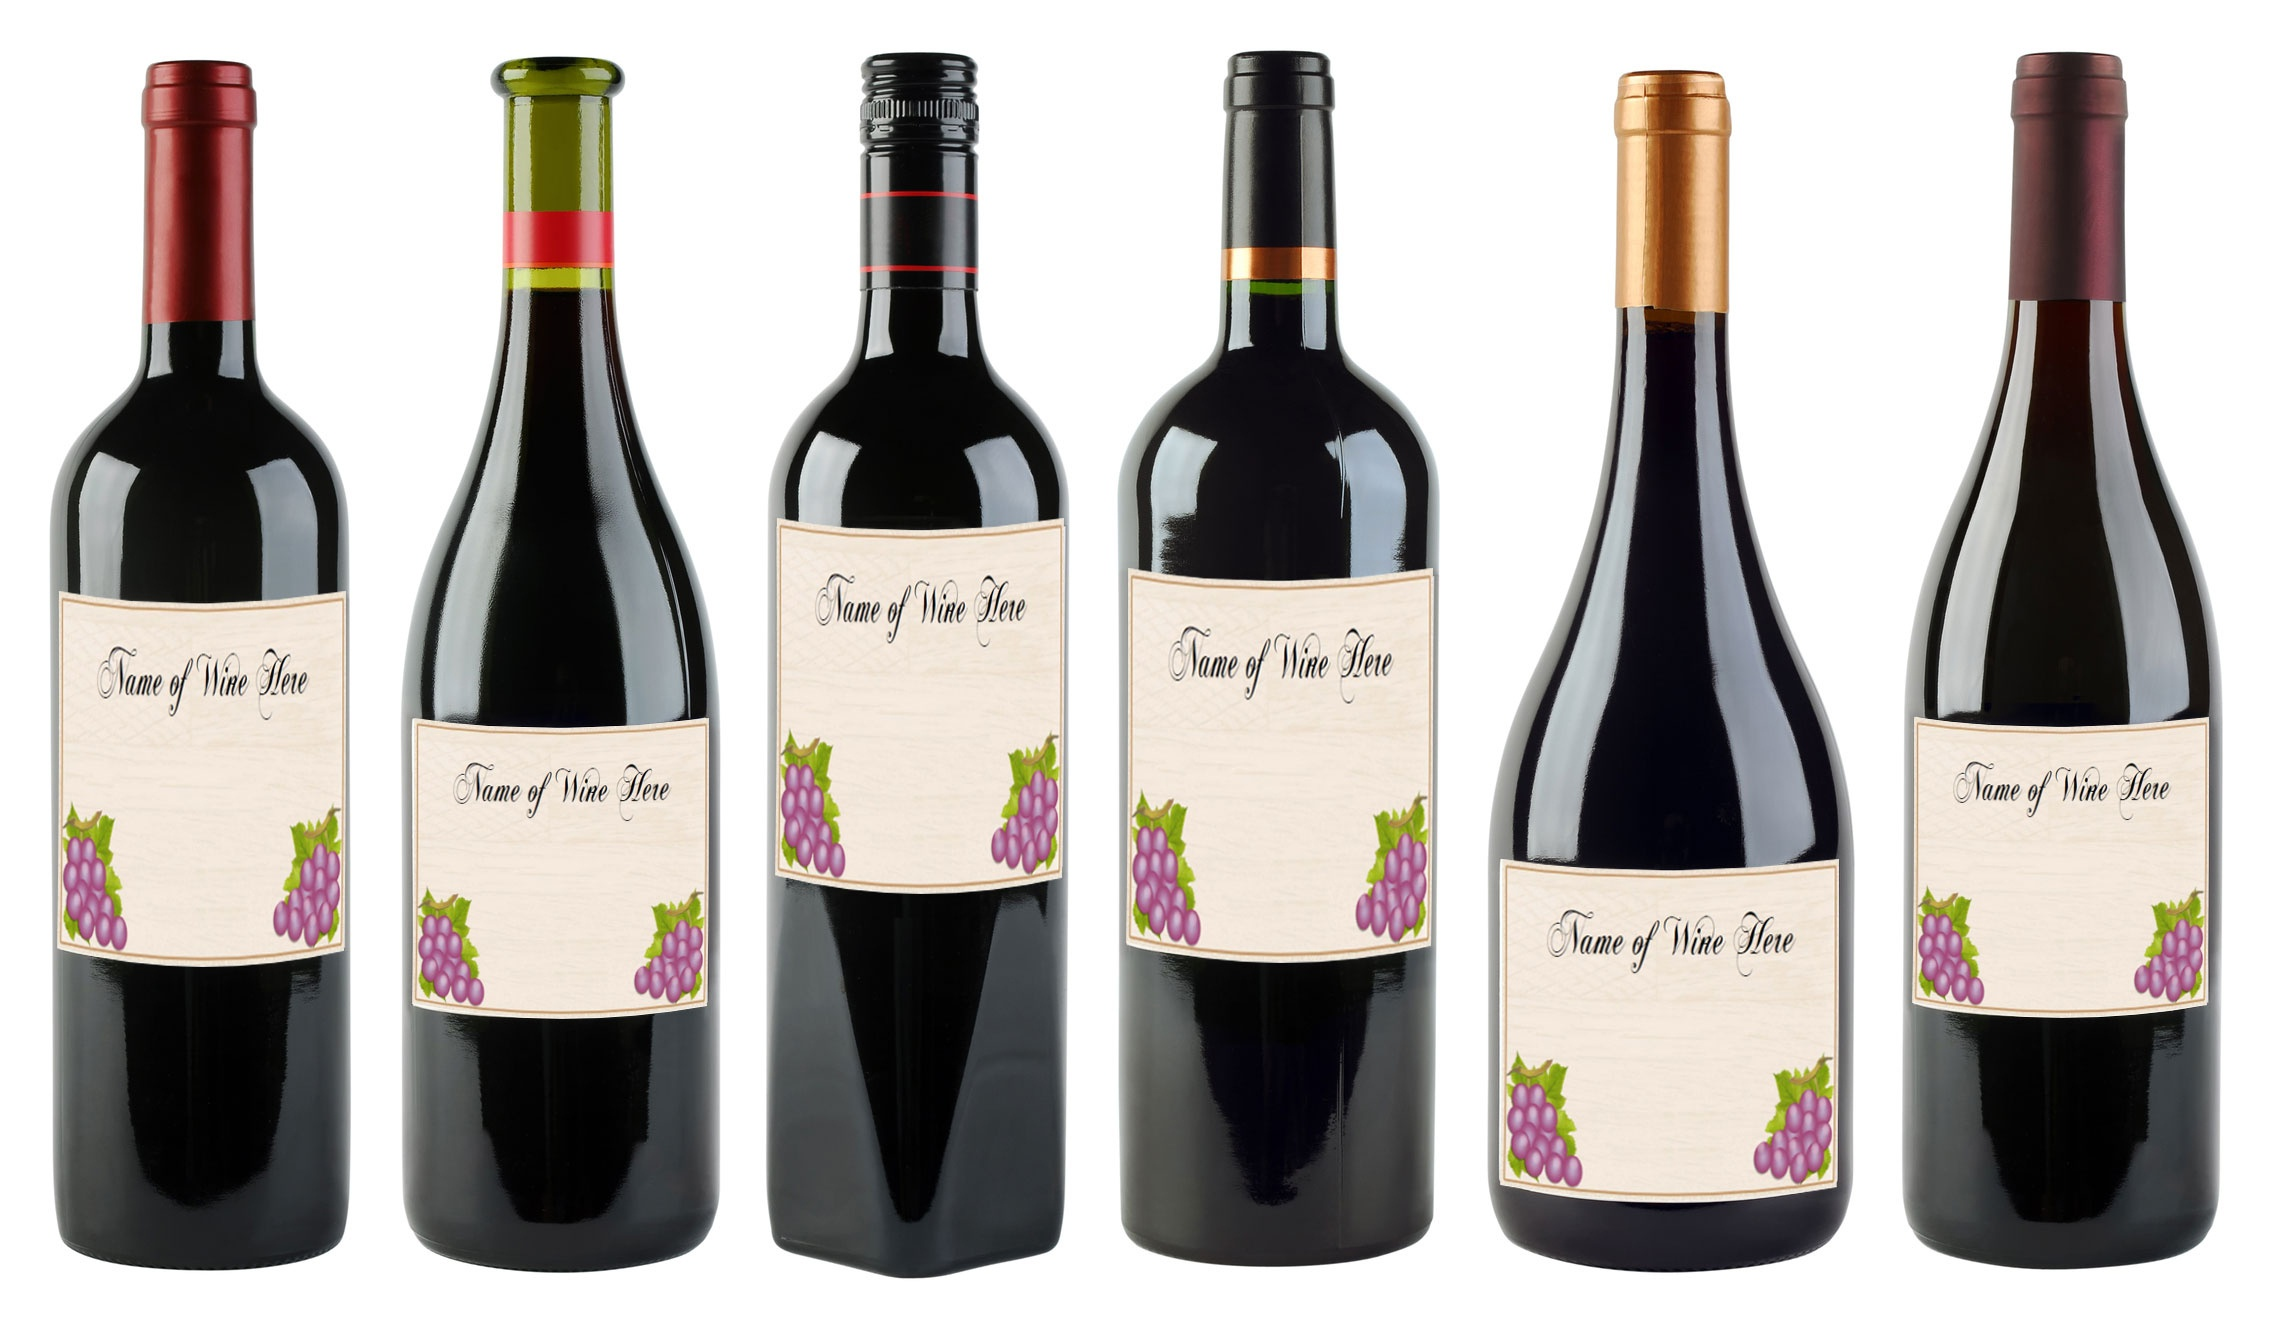 6 Free Printable Wine Labels You Can Customize | Lovetoknow - Free Printable Wine Labels For Birthday